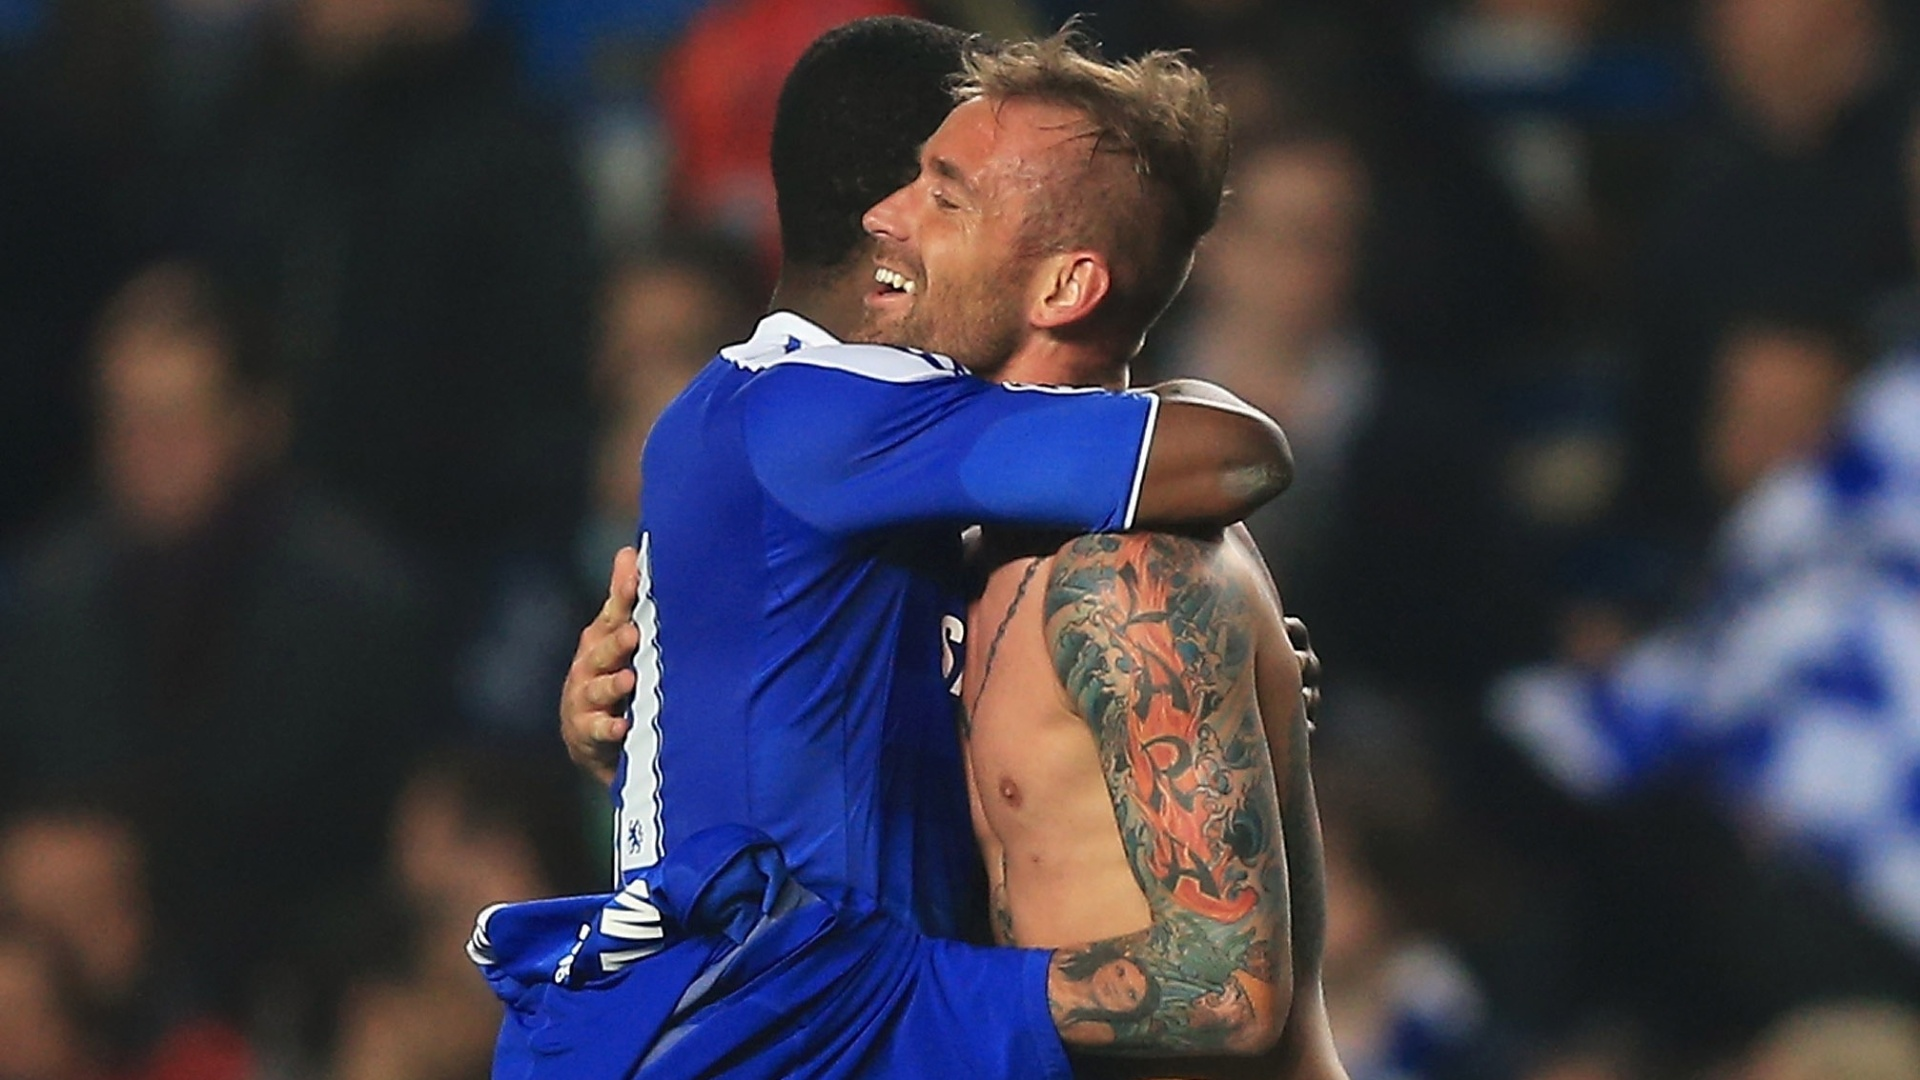 Tatuagem no brao esquerdo de Raul Meireles, do Chelsea, deu o que falar aps partida contra o Benfica pela Liga dos Campees (04/04/12)